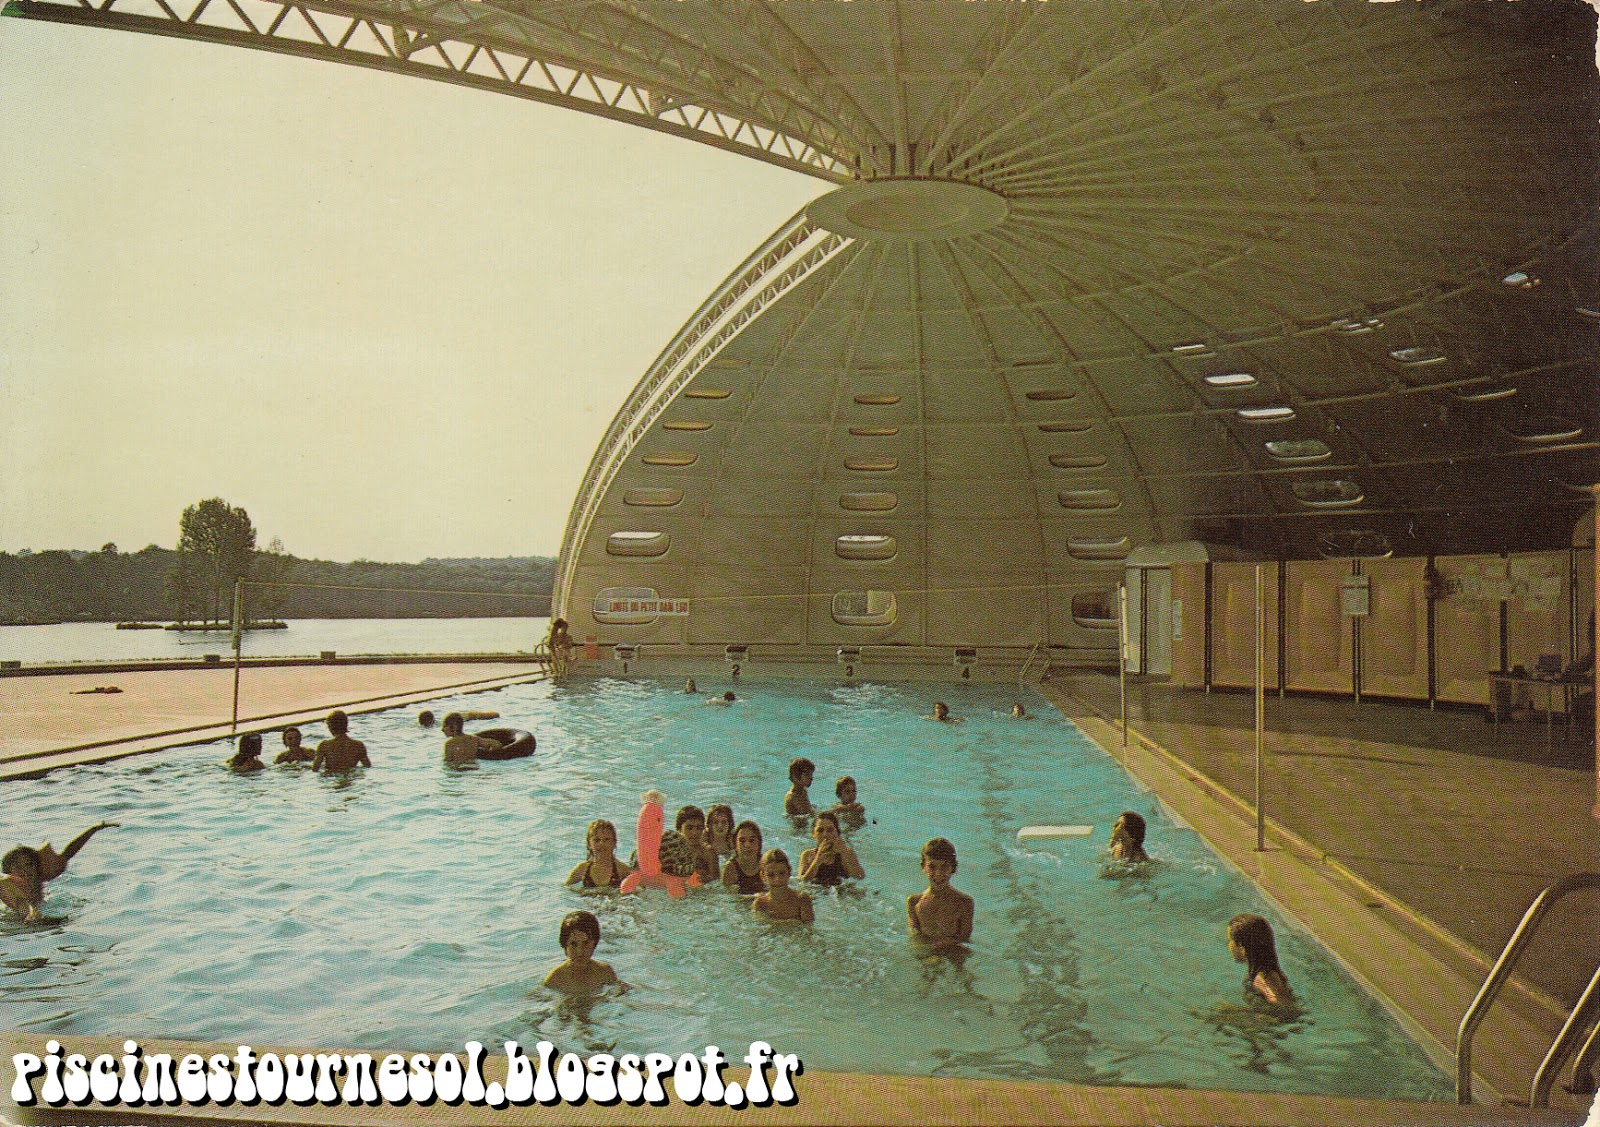 Piscines tournesol piscine tournesol saint paul les dax for Les piscines